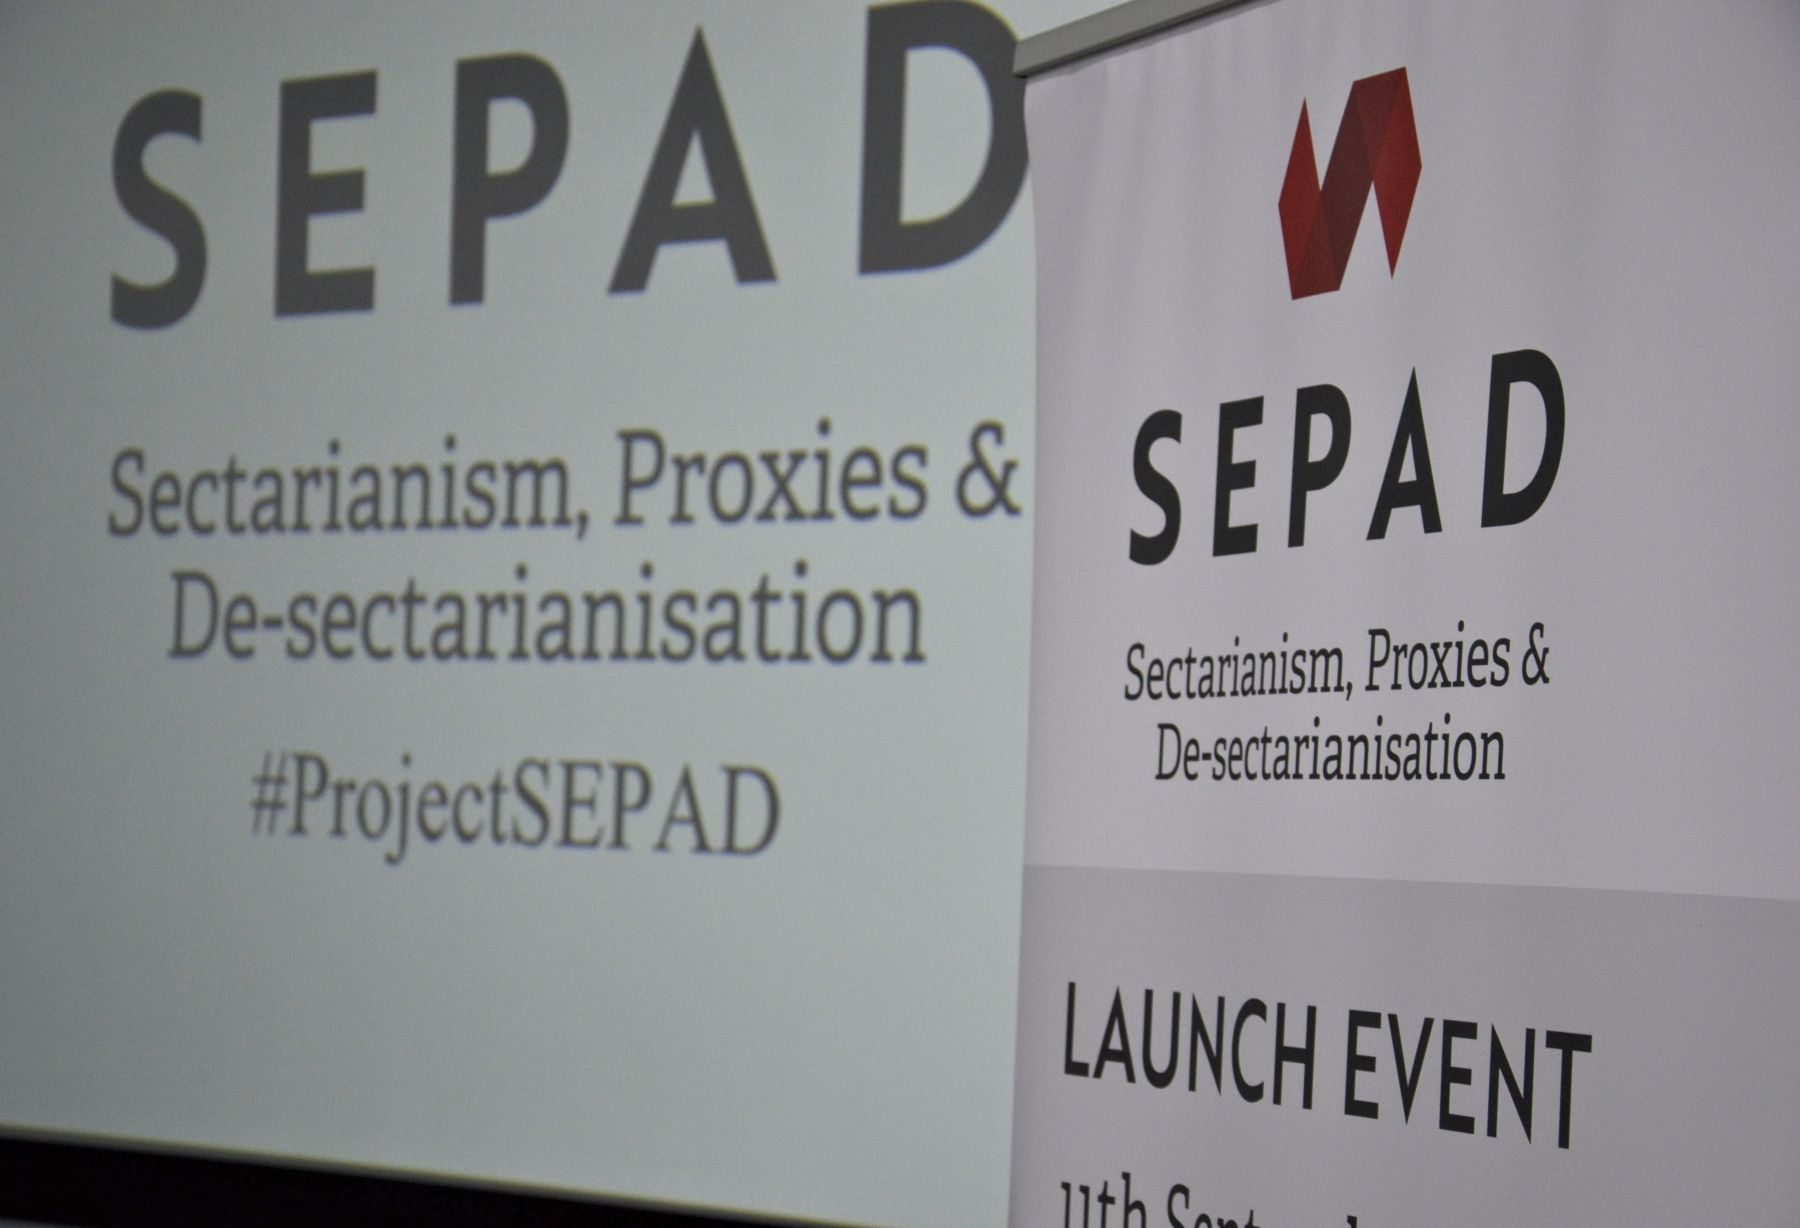 News: SEPAD Project Launched